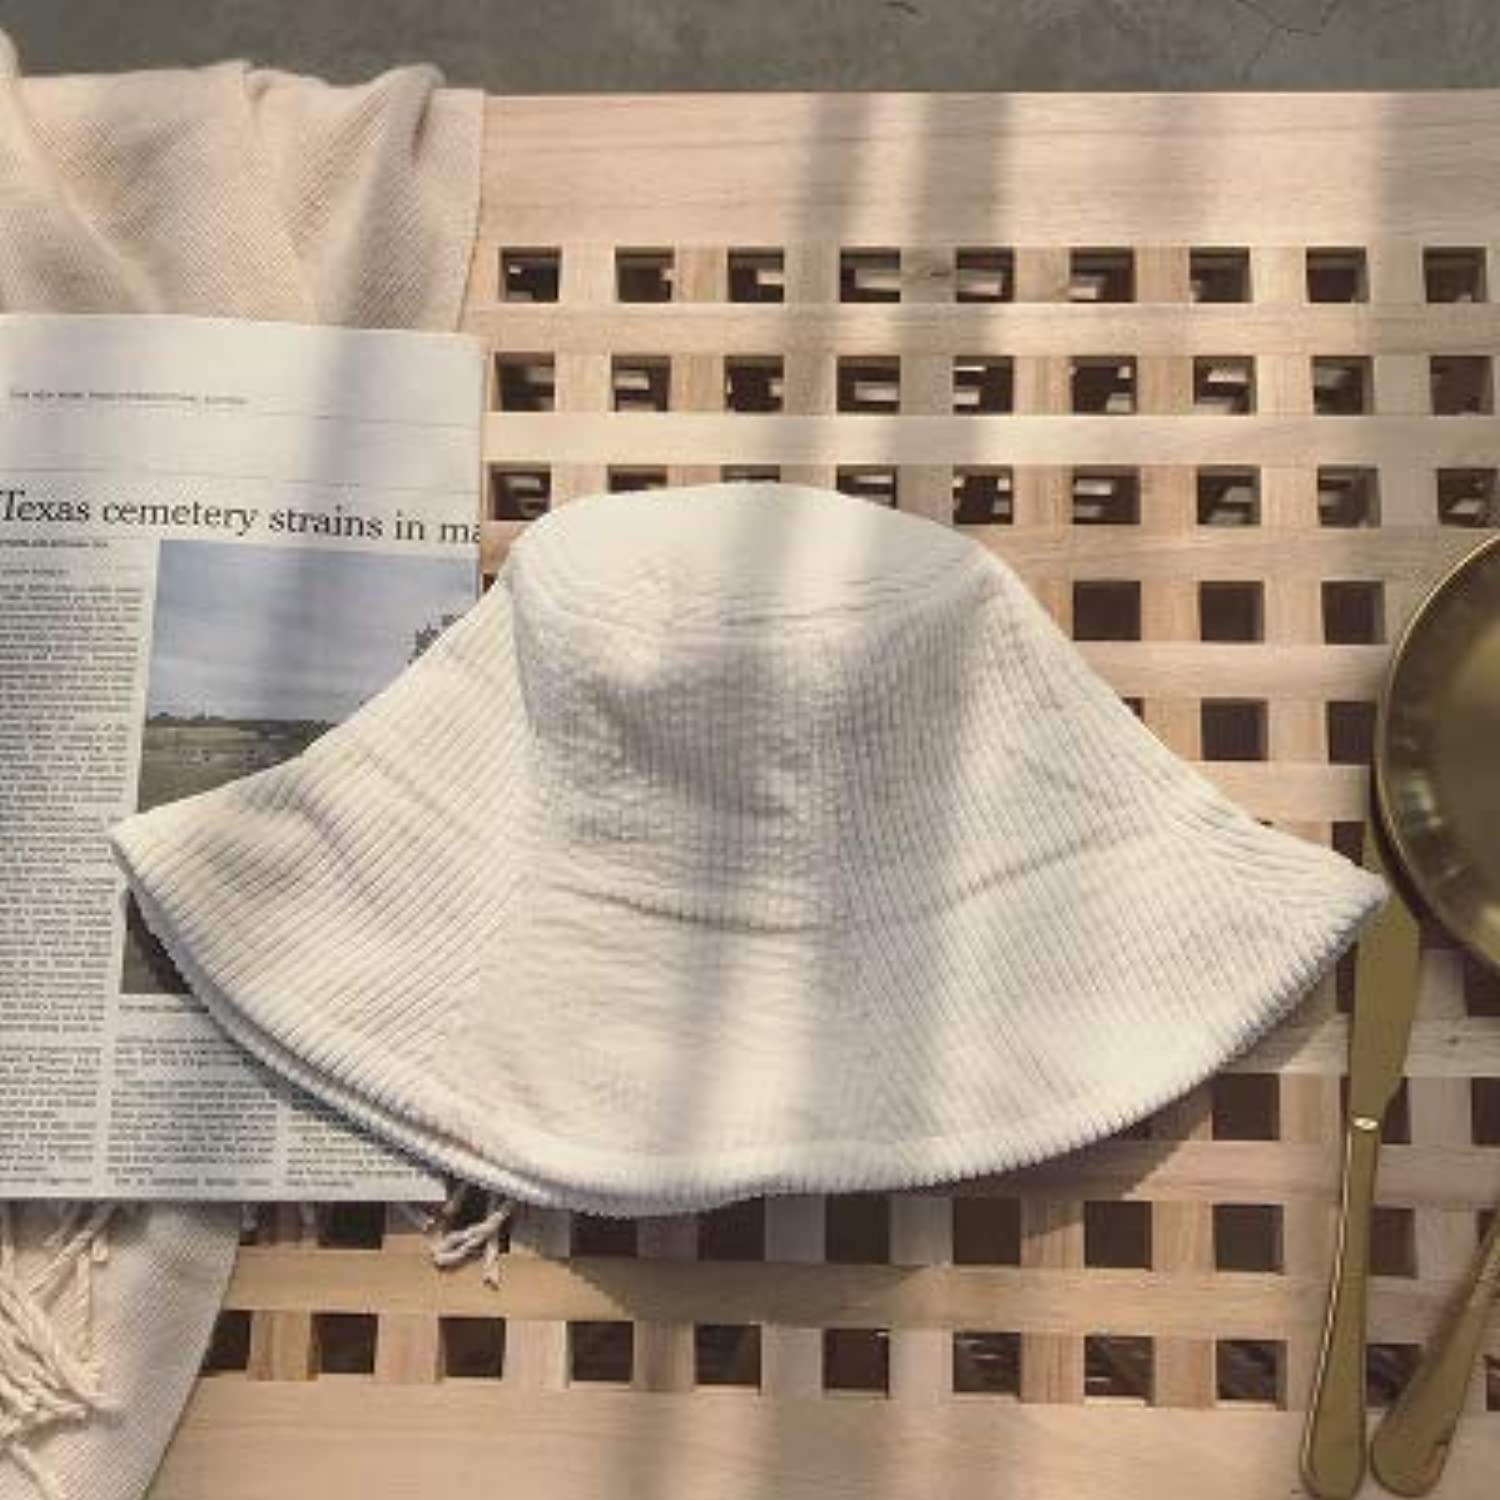 Home Fisherman hat Soft Sister Small Fresh Corduroy Cap Solid color Autumn and Winter Wild Pot hat (color   White, Size   M(5658cm)) Warm Soft and Comfortable Hats